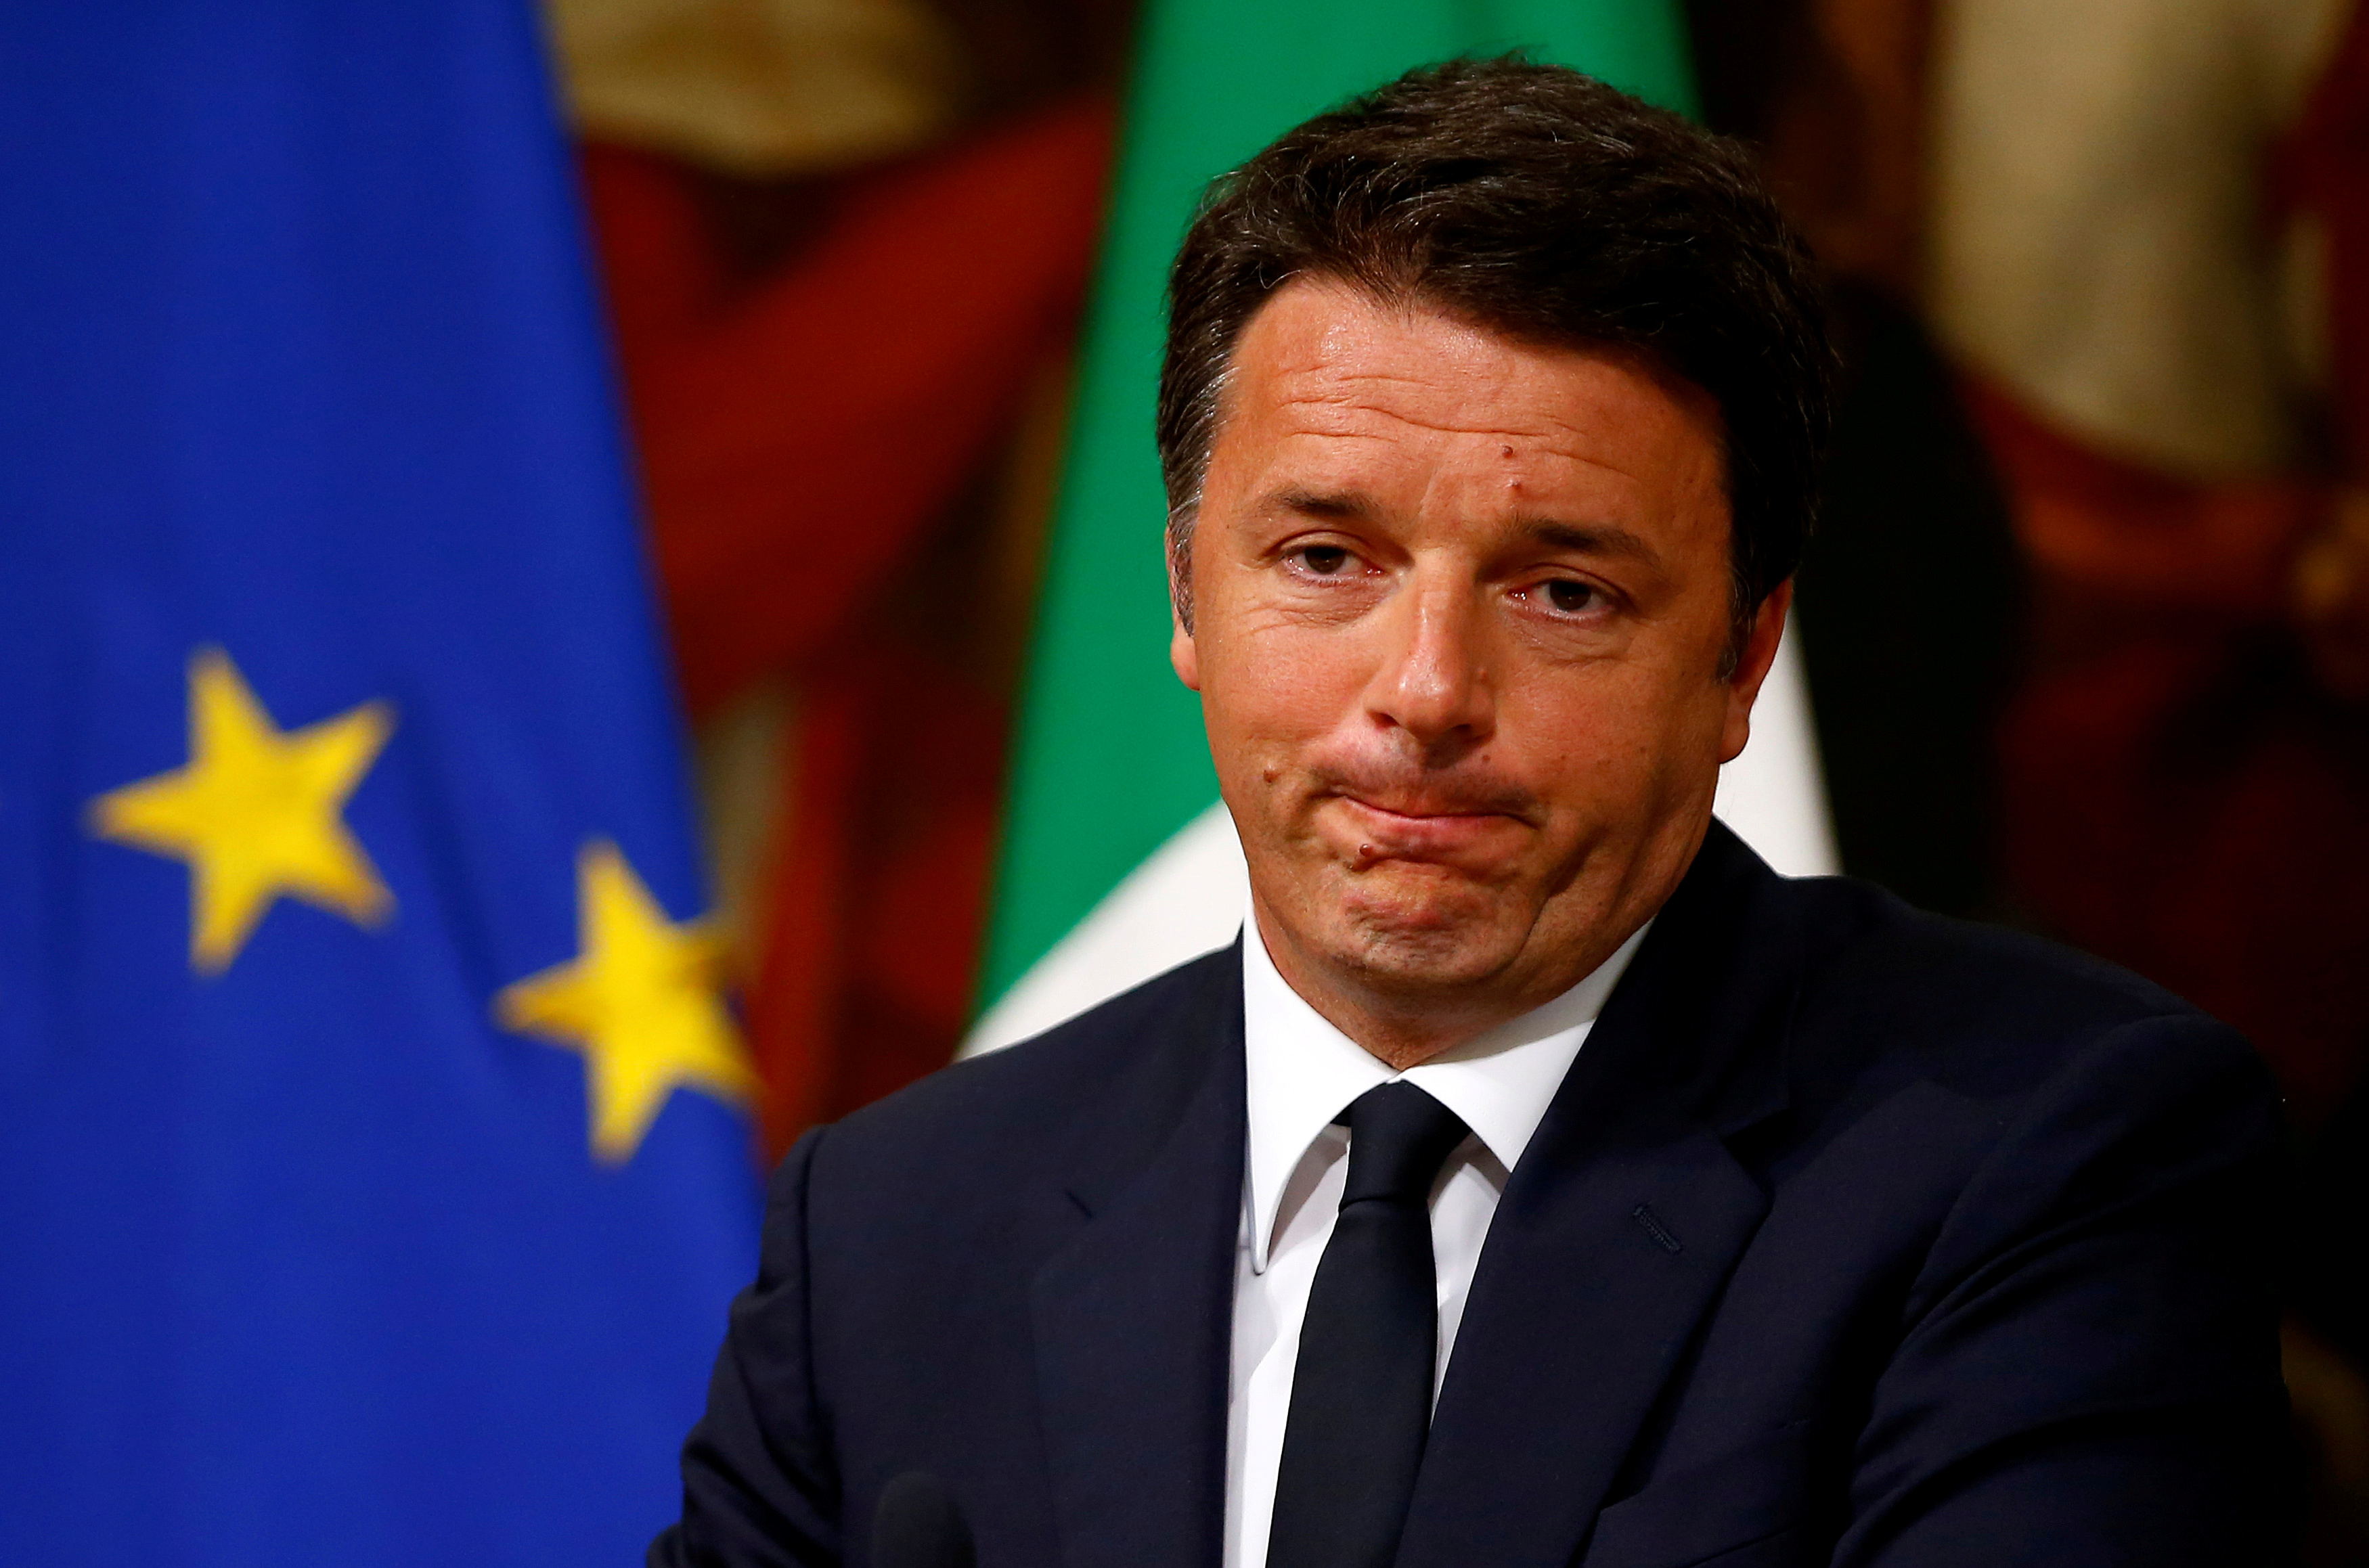 Italy Prime Minister Matteo Renzi makes a face as he talks during a news conference at Chigi Palace in Rome, Italy June 20, 2016. REUTERS/Tony Gentile/File Photo - RTSPNCM